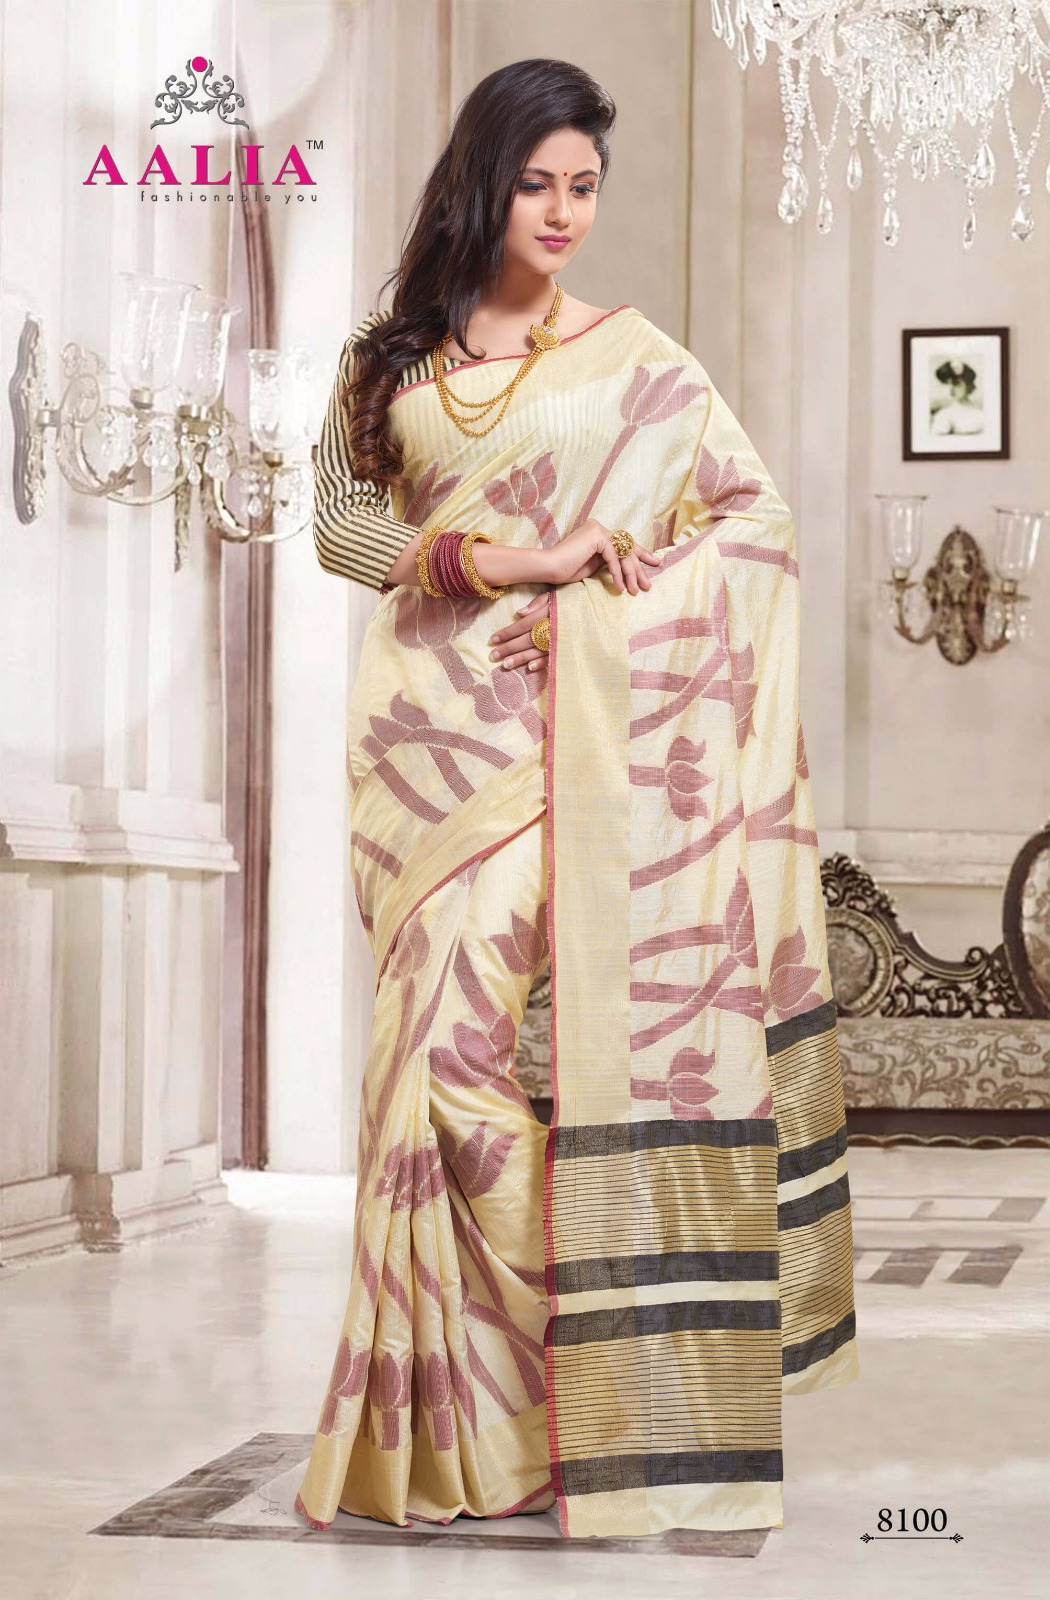 Aalia – Silk Fashion Wear Indian Women Printed Saree